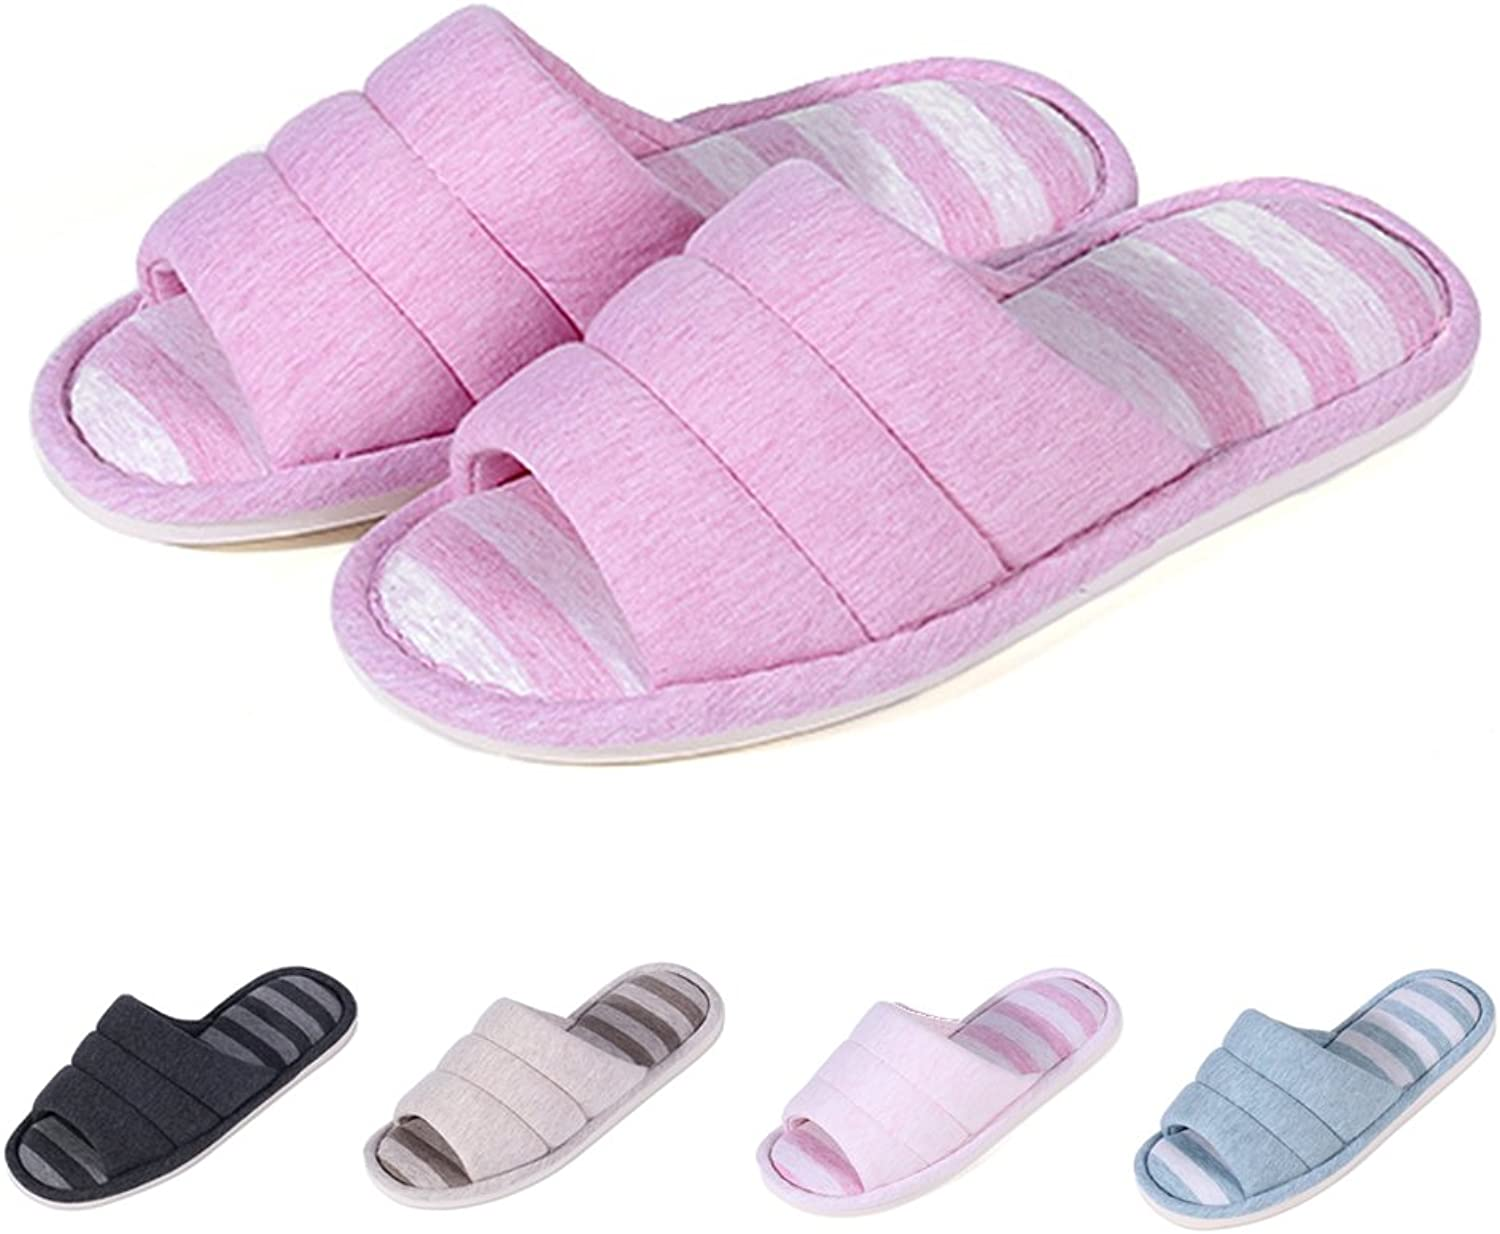 Shevalues Women's Soft Indoor Slippers Open Toe Cotton Memory Foam Slip on Home shoes House Slippers DP-L Dark Pink